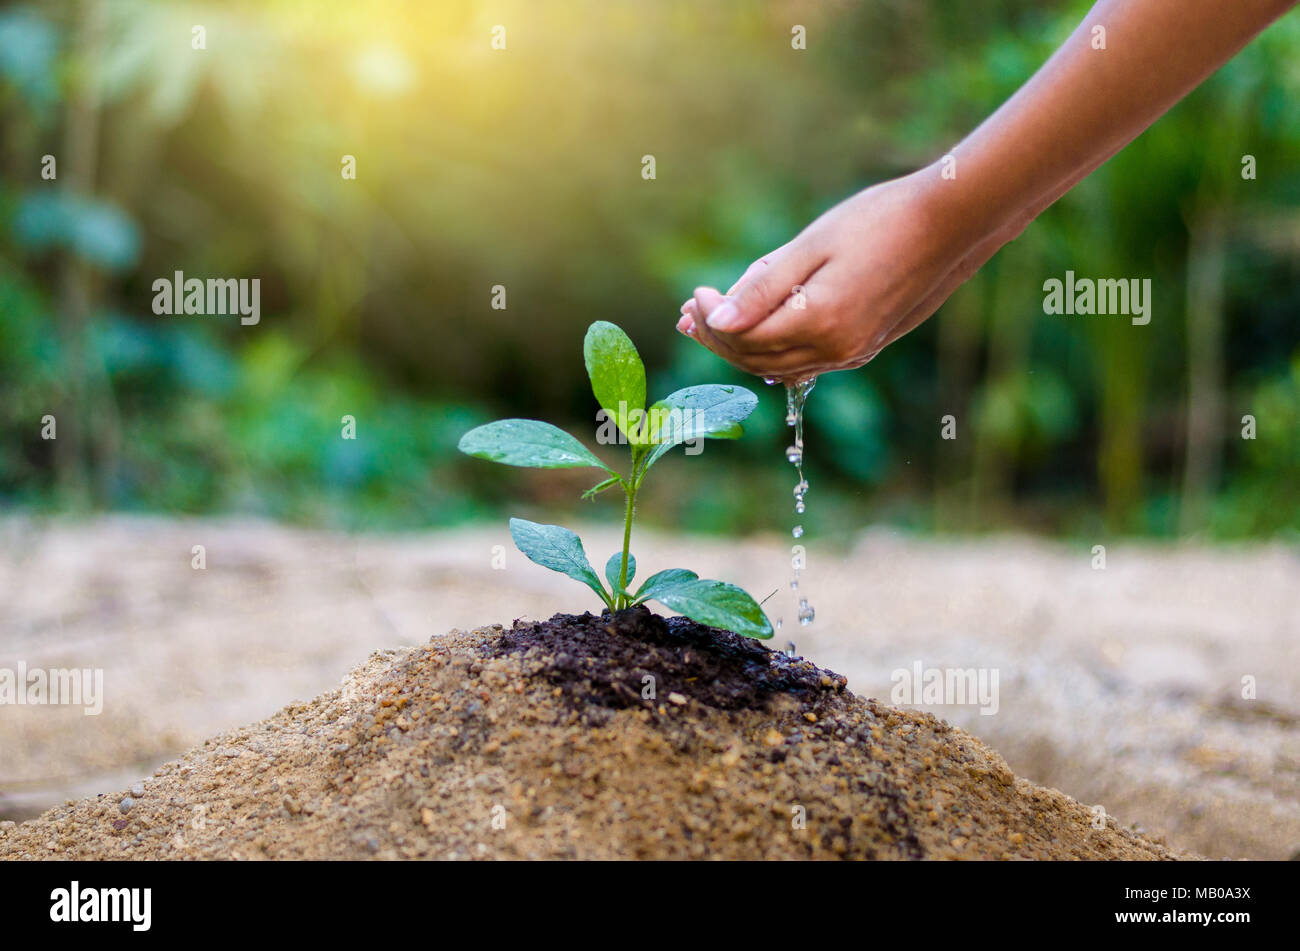 hand give water tree In the hands of trees growing seedlings. Bokeh green Background Female hand holding tree on nature field grass Forest conservation - Stock Image